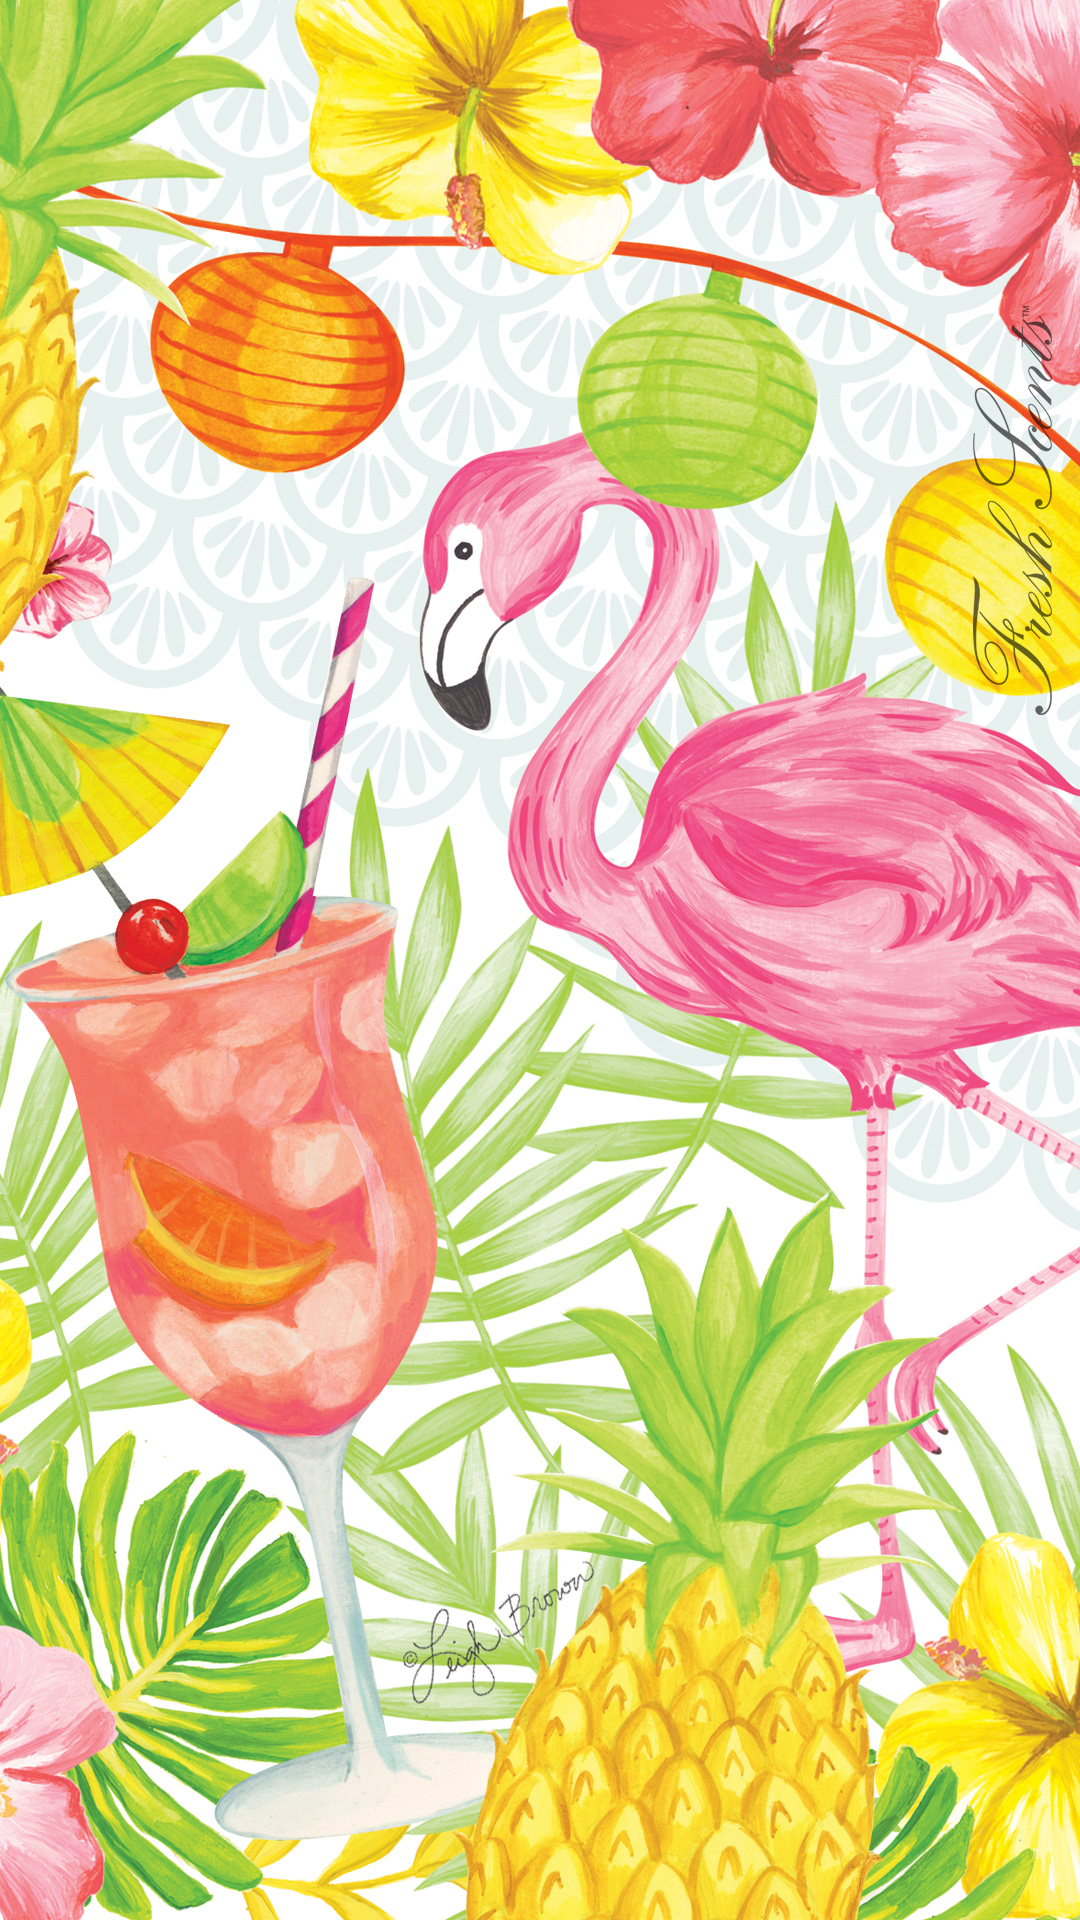 Carry-the-beautiful-Flamingo-Party-sachet-artwork-with-you-for-a-little-taste-of-summer-on-your-phon-wallpaper-wpc5803294